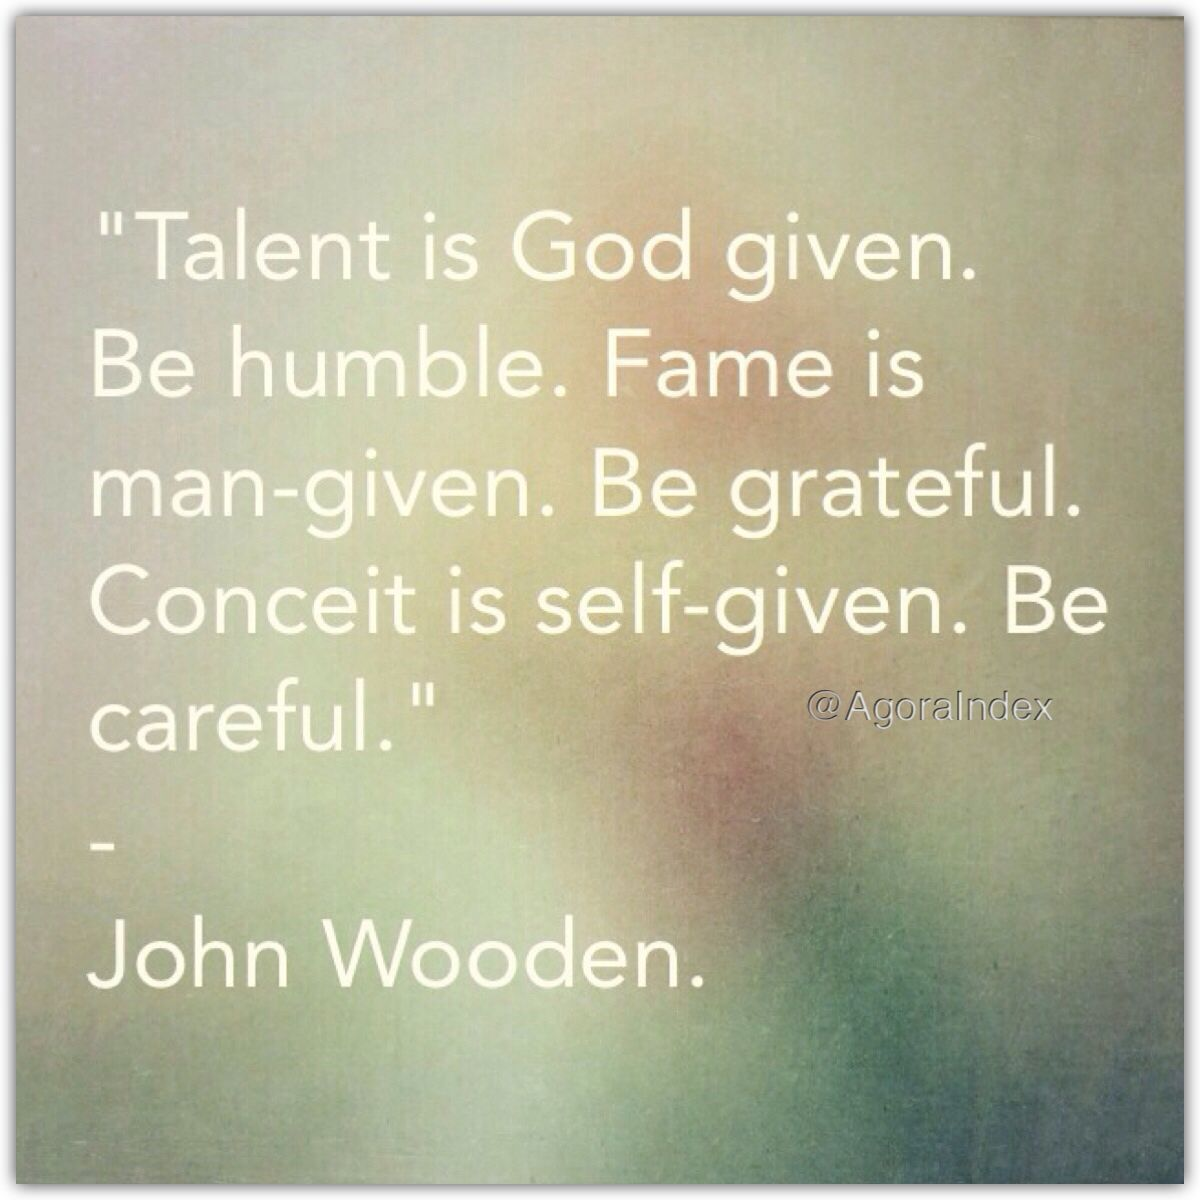 """Talent is God given. Be humble. Fame is man-given. Be grateful. Conceit is self-given. Be careful."" - John Wooden."